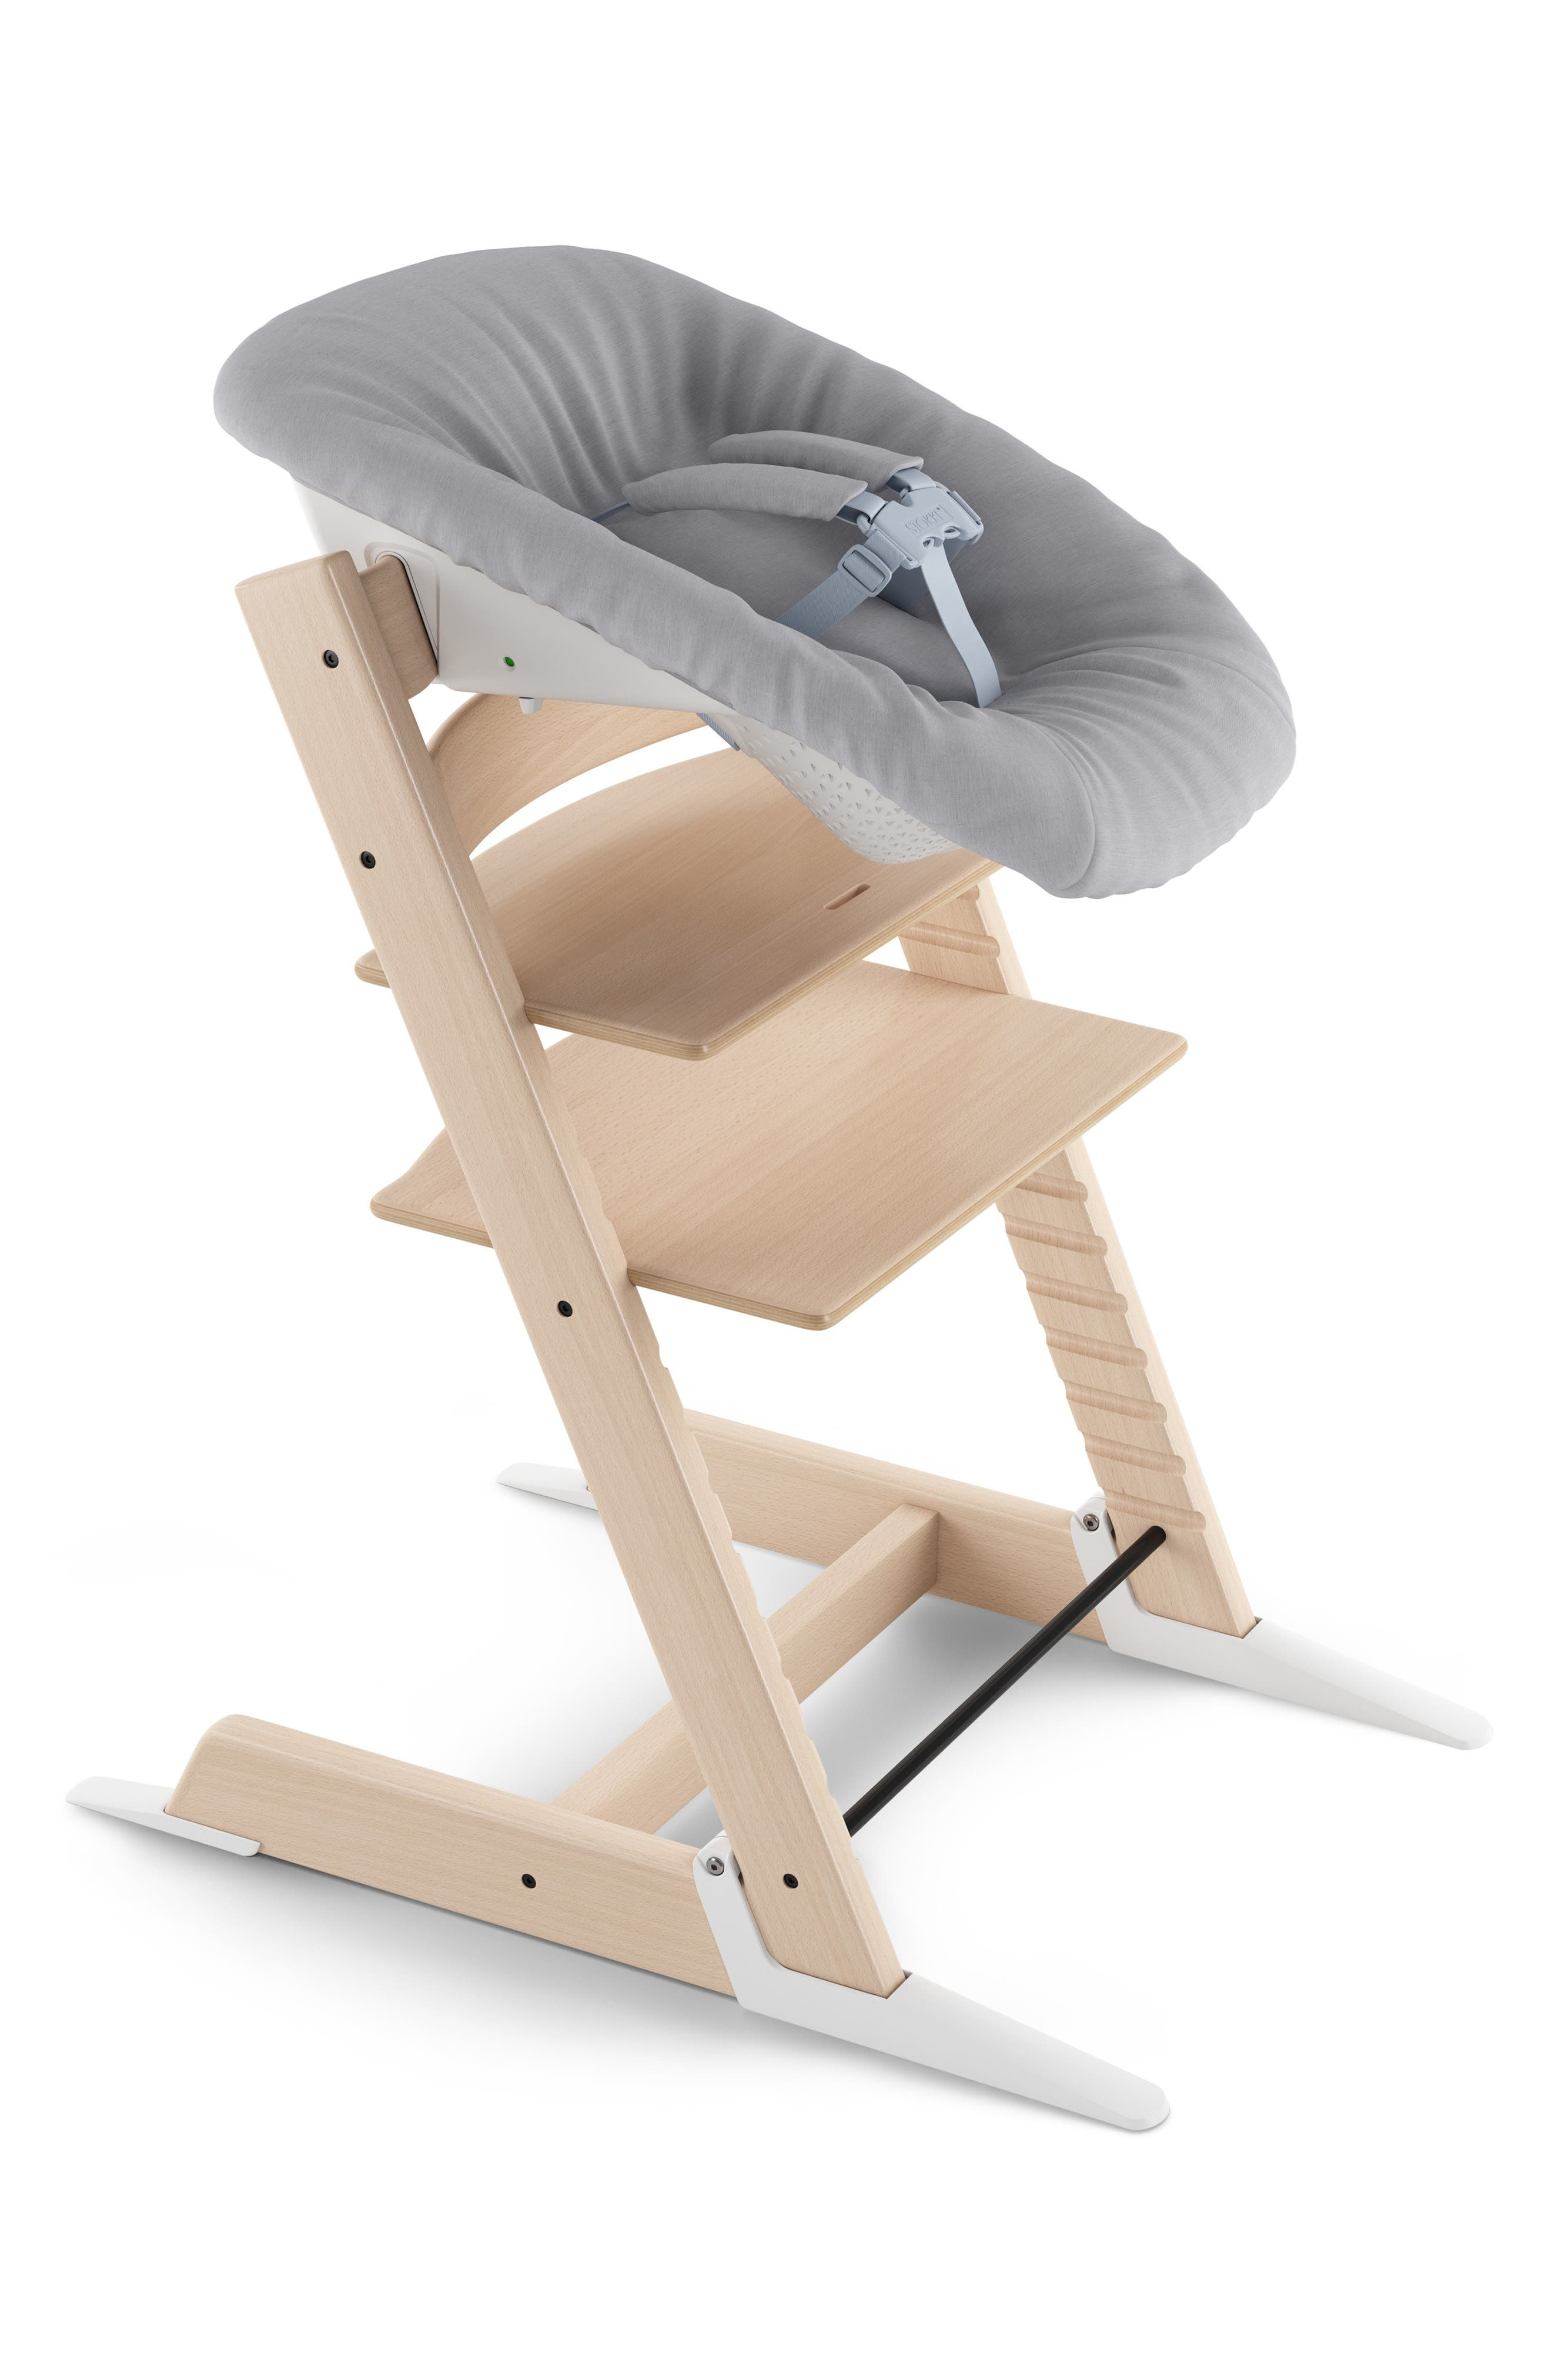 STOKKE,                              Tripp Trapp<sup>®</sup> Newborn Set,                             Main thumbnail 1, color,                             GREY